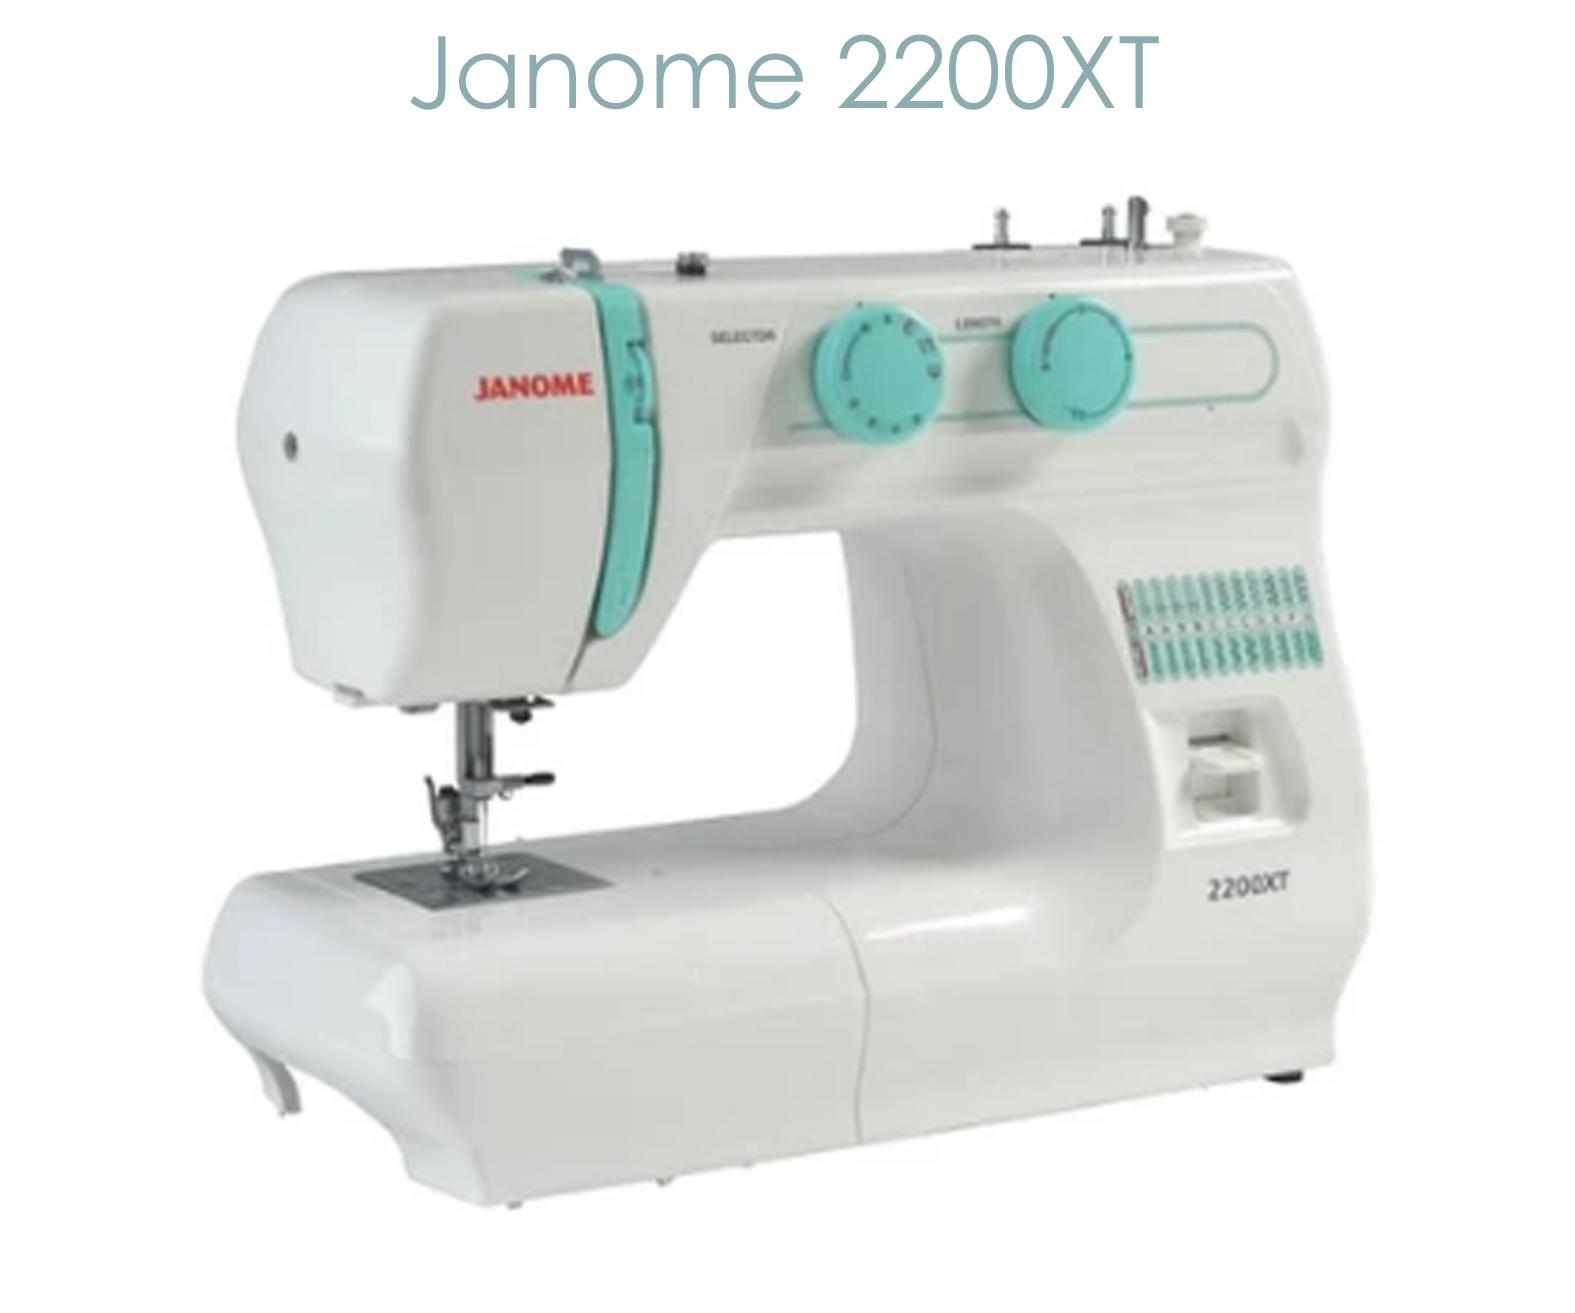 Janome 2200XT a good budget sewing machine for free motion sewing